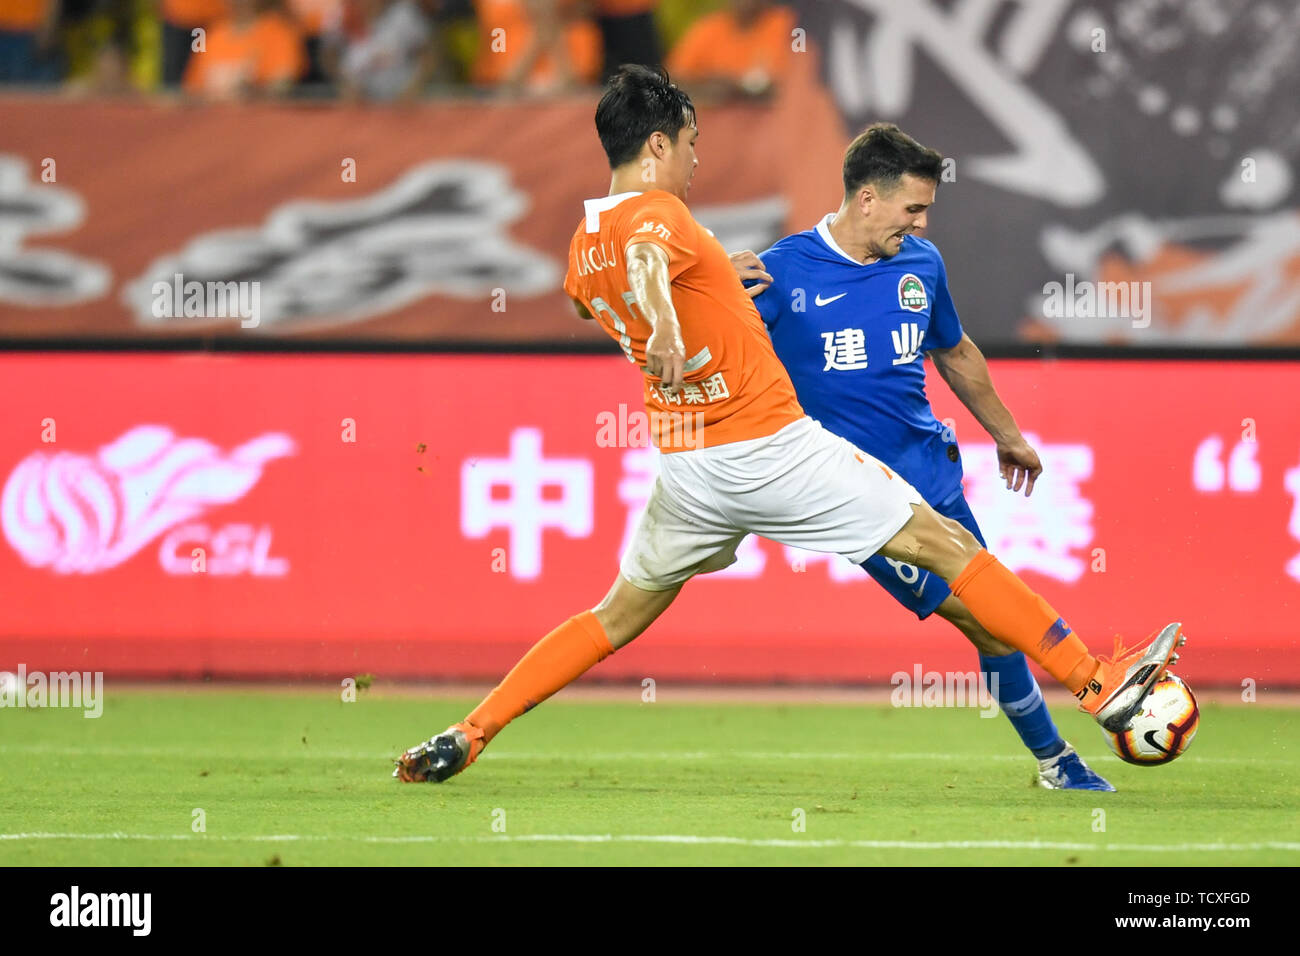 English-born Taiwanese football player Tim Chow, right, of Henan Jianye challenges a player of Wuhan Zall in their 4th round match during the 2019 Chinese Football Association Super League (CSL) in Wuhan city, central China's Hubei province, 8 June 2019.  Wuhan Zall played draw to Henan Jianye 0-0. Stock Photo